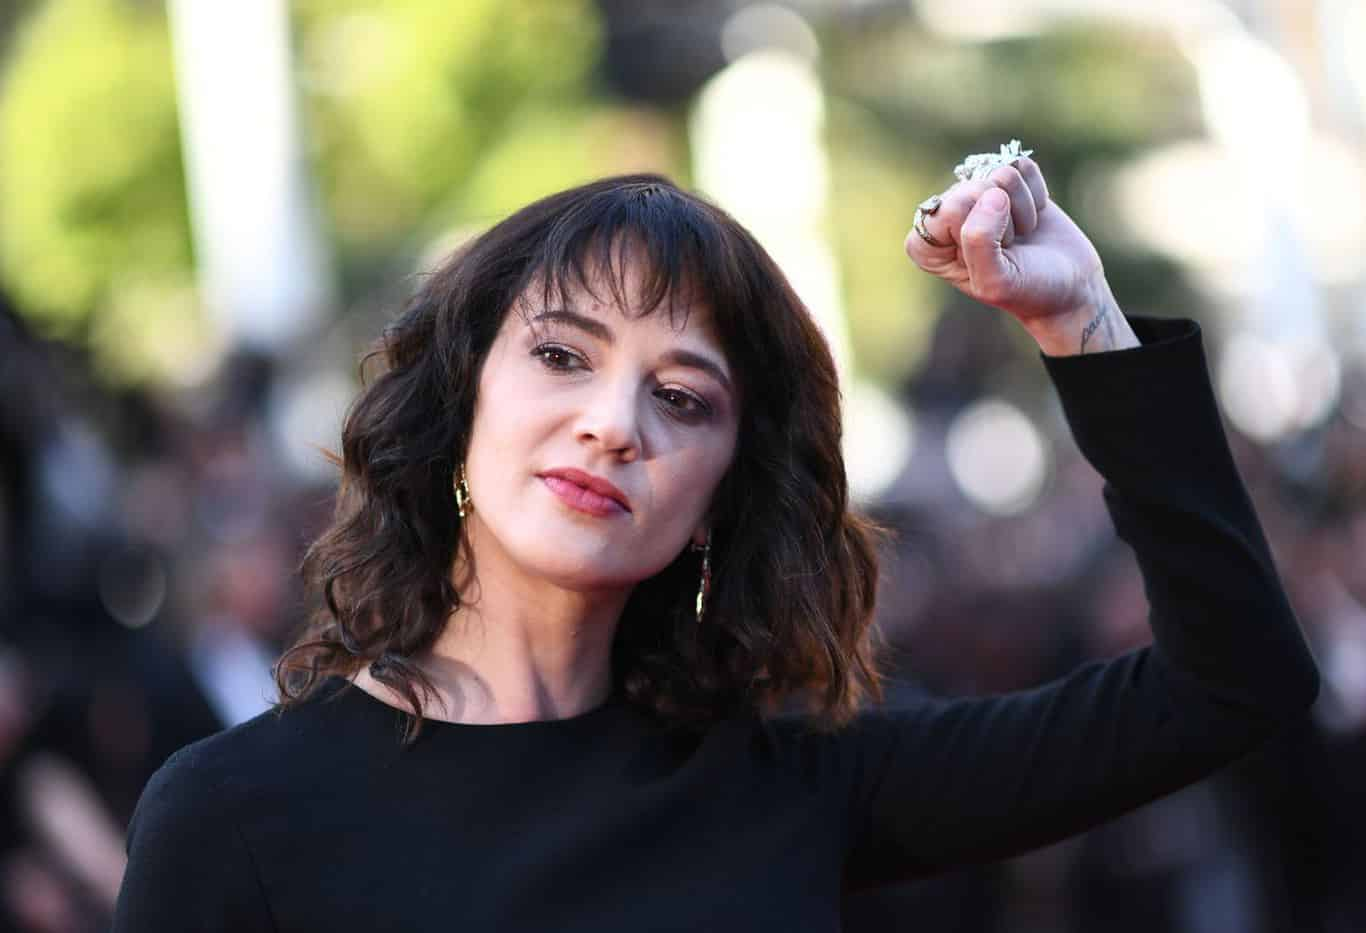 Asia Argento niega acusaciones de abuso sexual en su contra comparte que Anthony Bourdain le sugirió la idea del pago